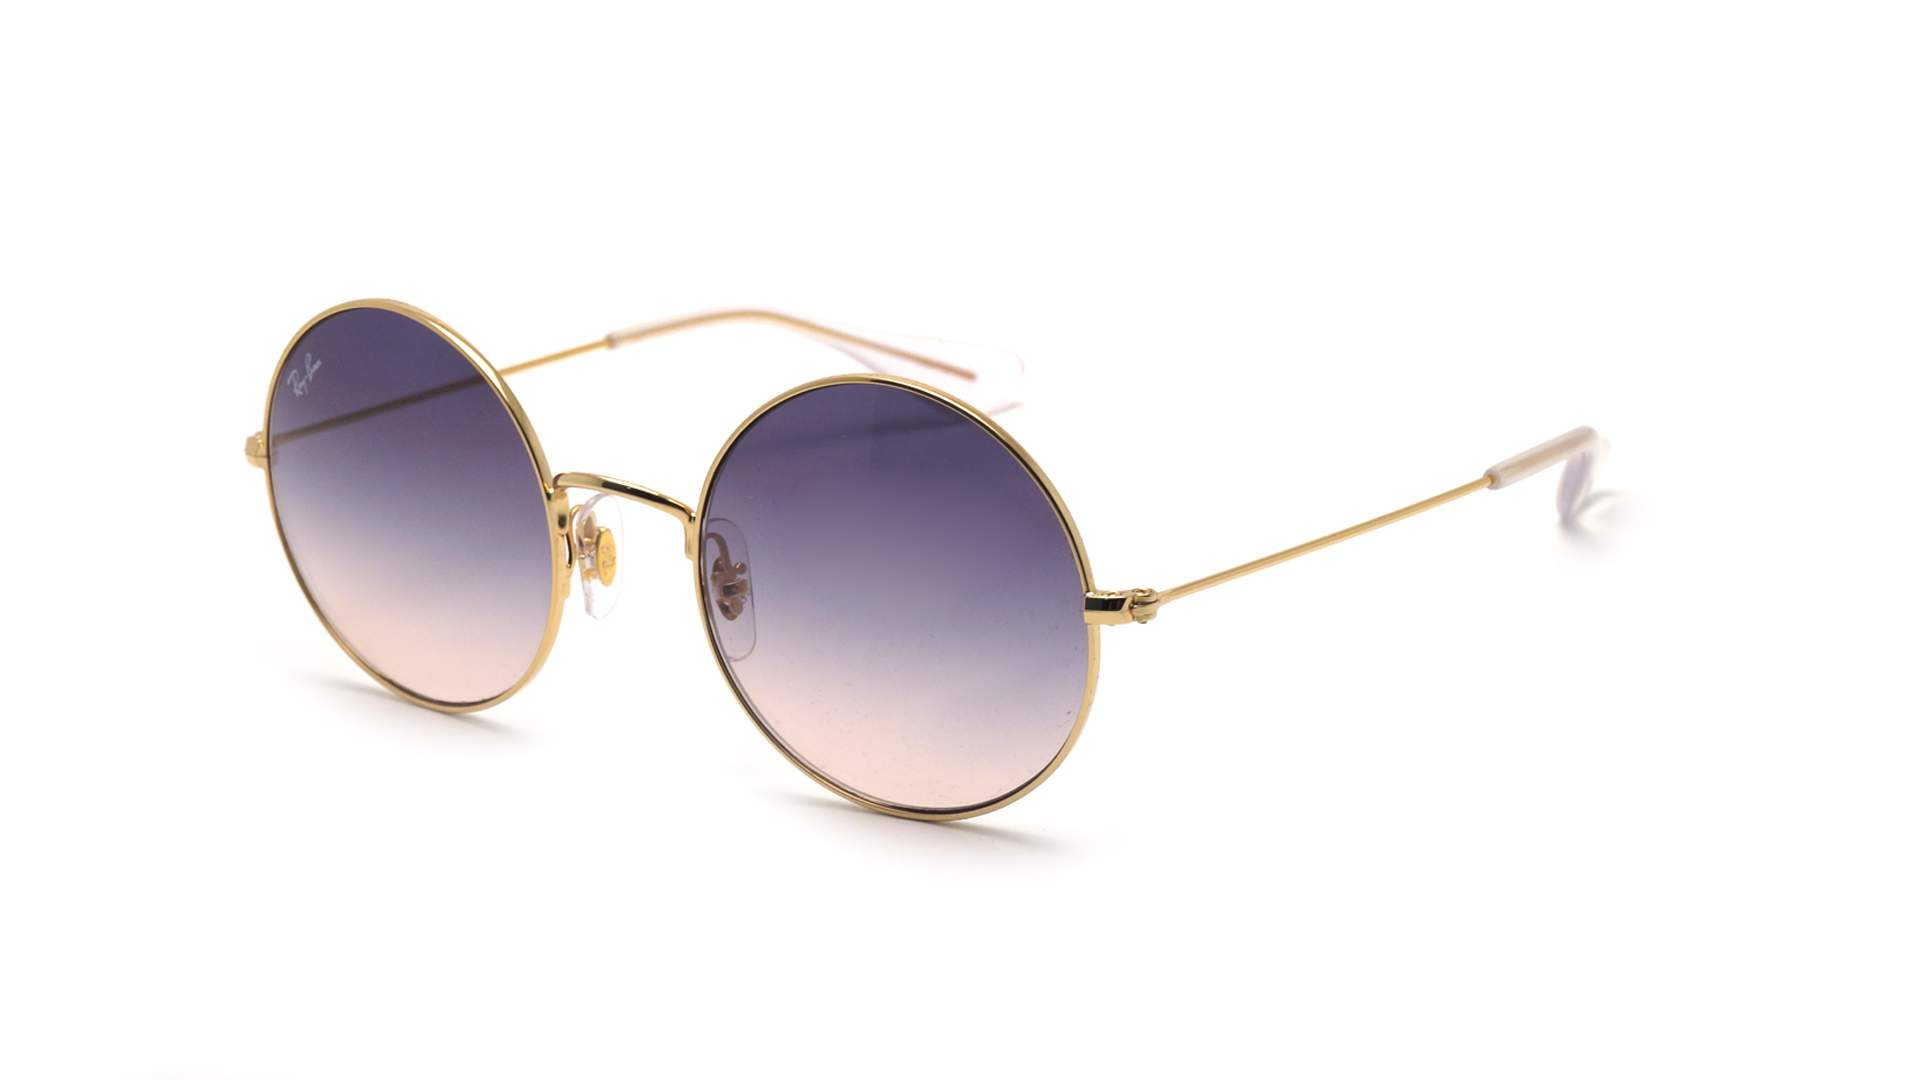 d351bc3629d Sunglasses Ray-Ban Ja-jo Gold RB3592 001 I9 50-20 Medium Gradient